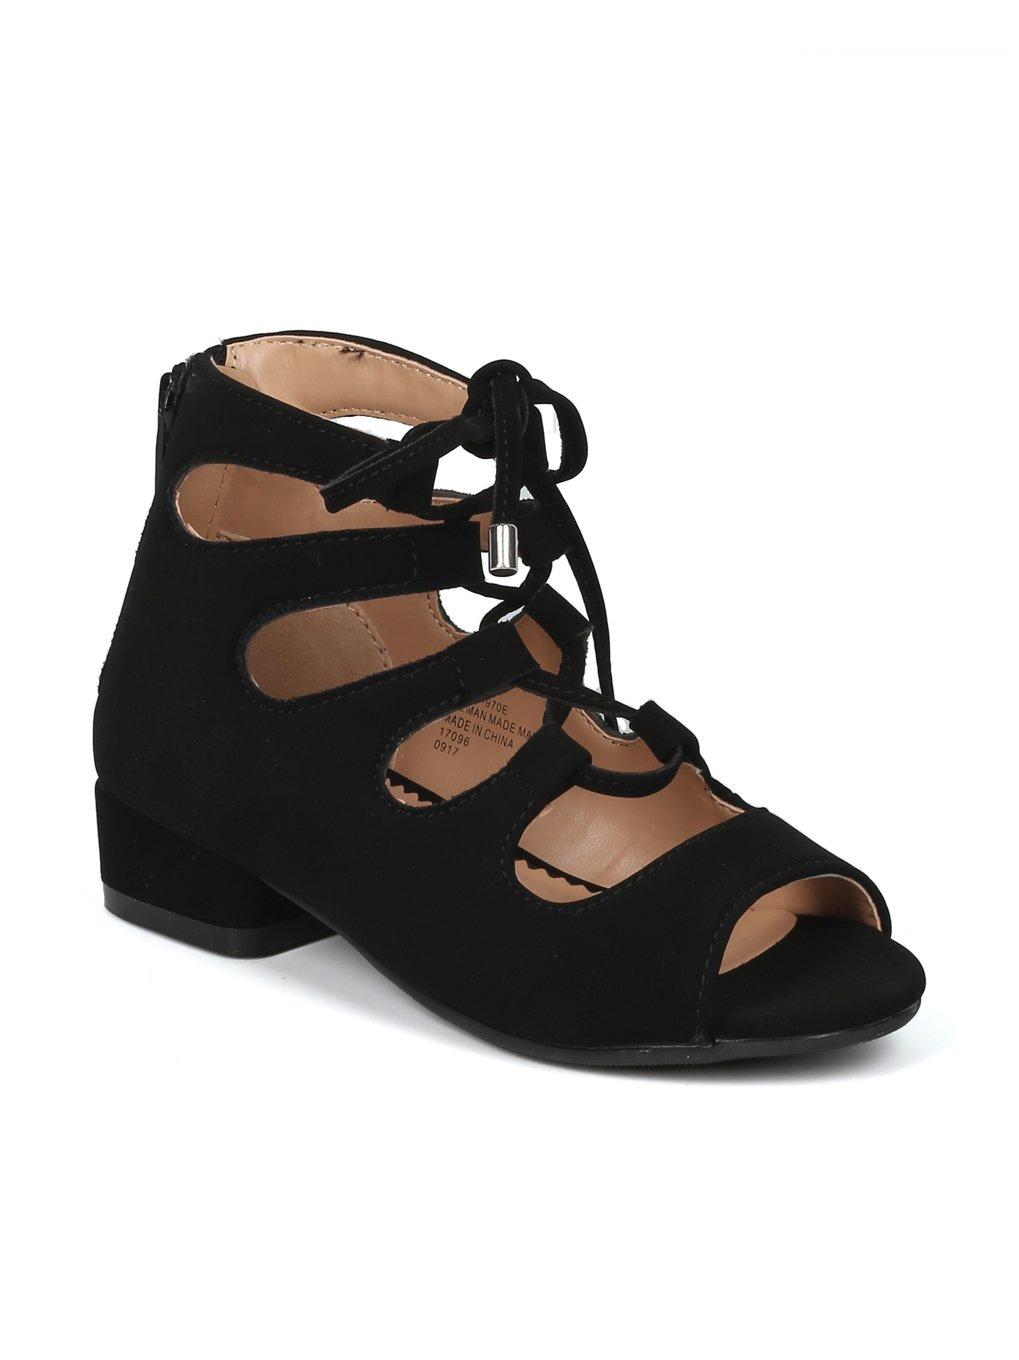 369f0ca19 Alrisco Girls Peep Toe Lace Up Gladiator Low Heel Sandal HF97 - Black  Nubuck (Size  Little Kid 11)